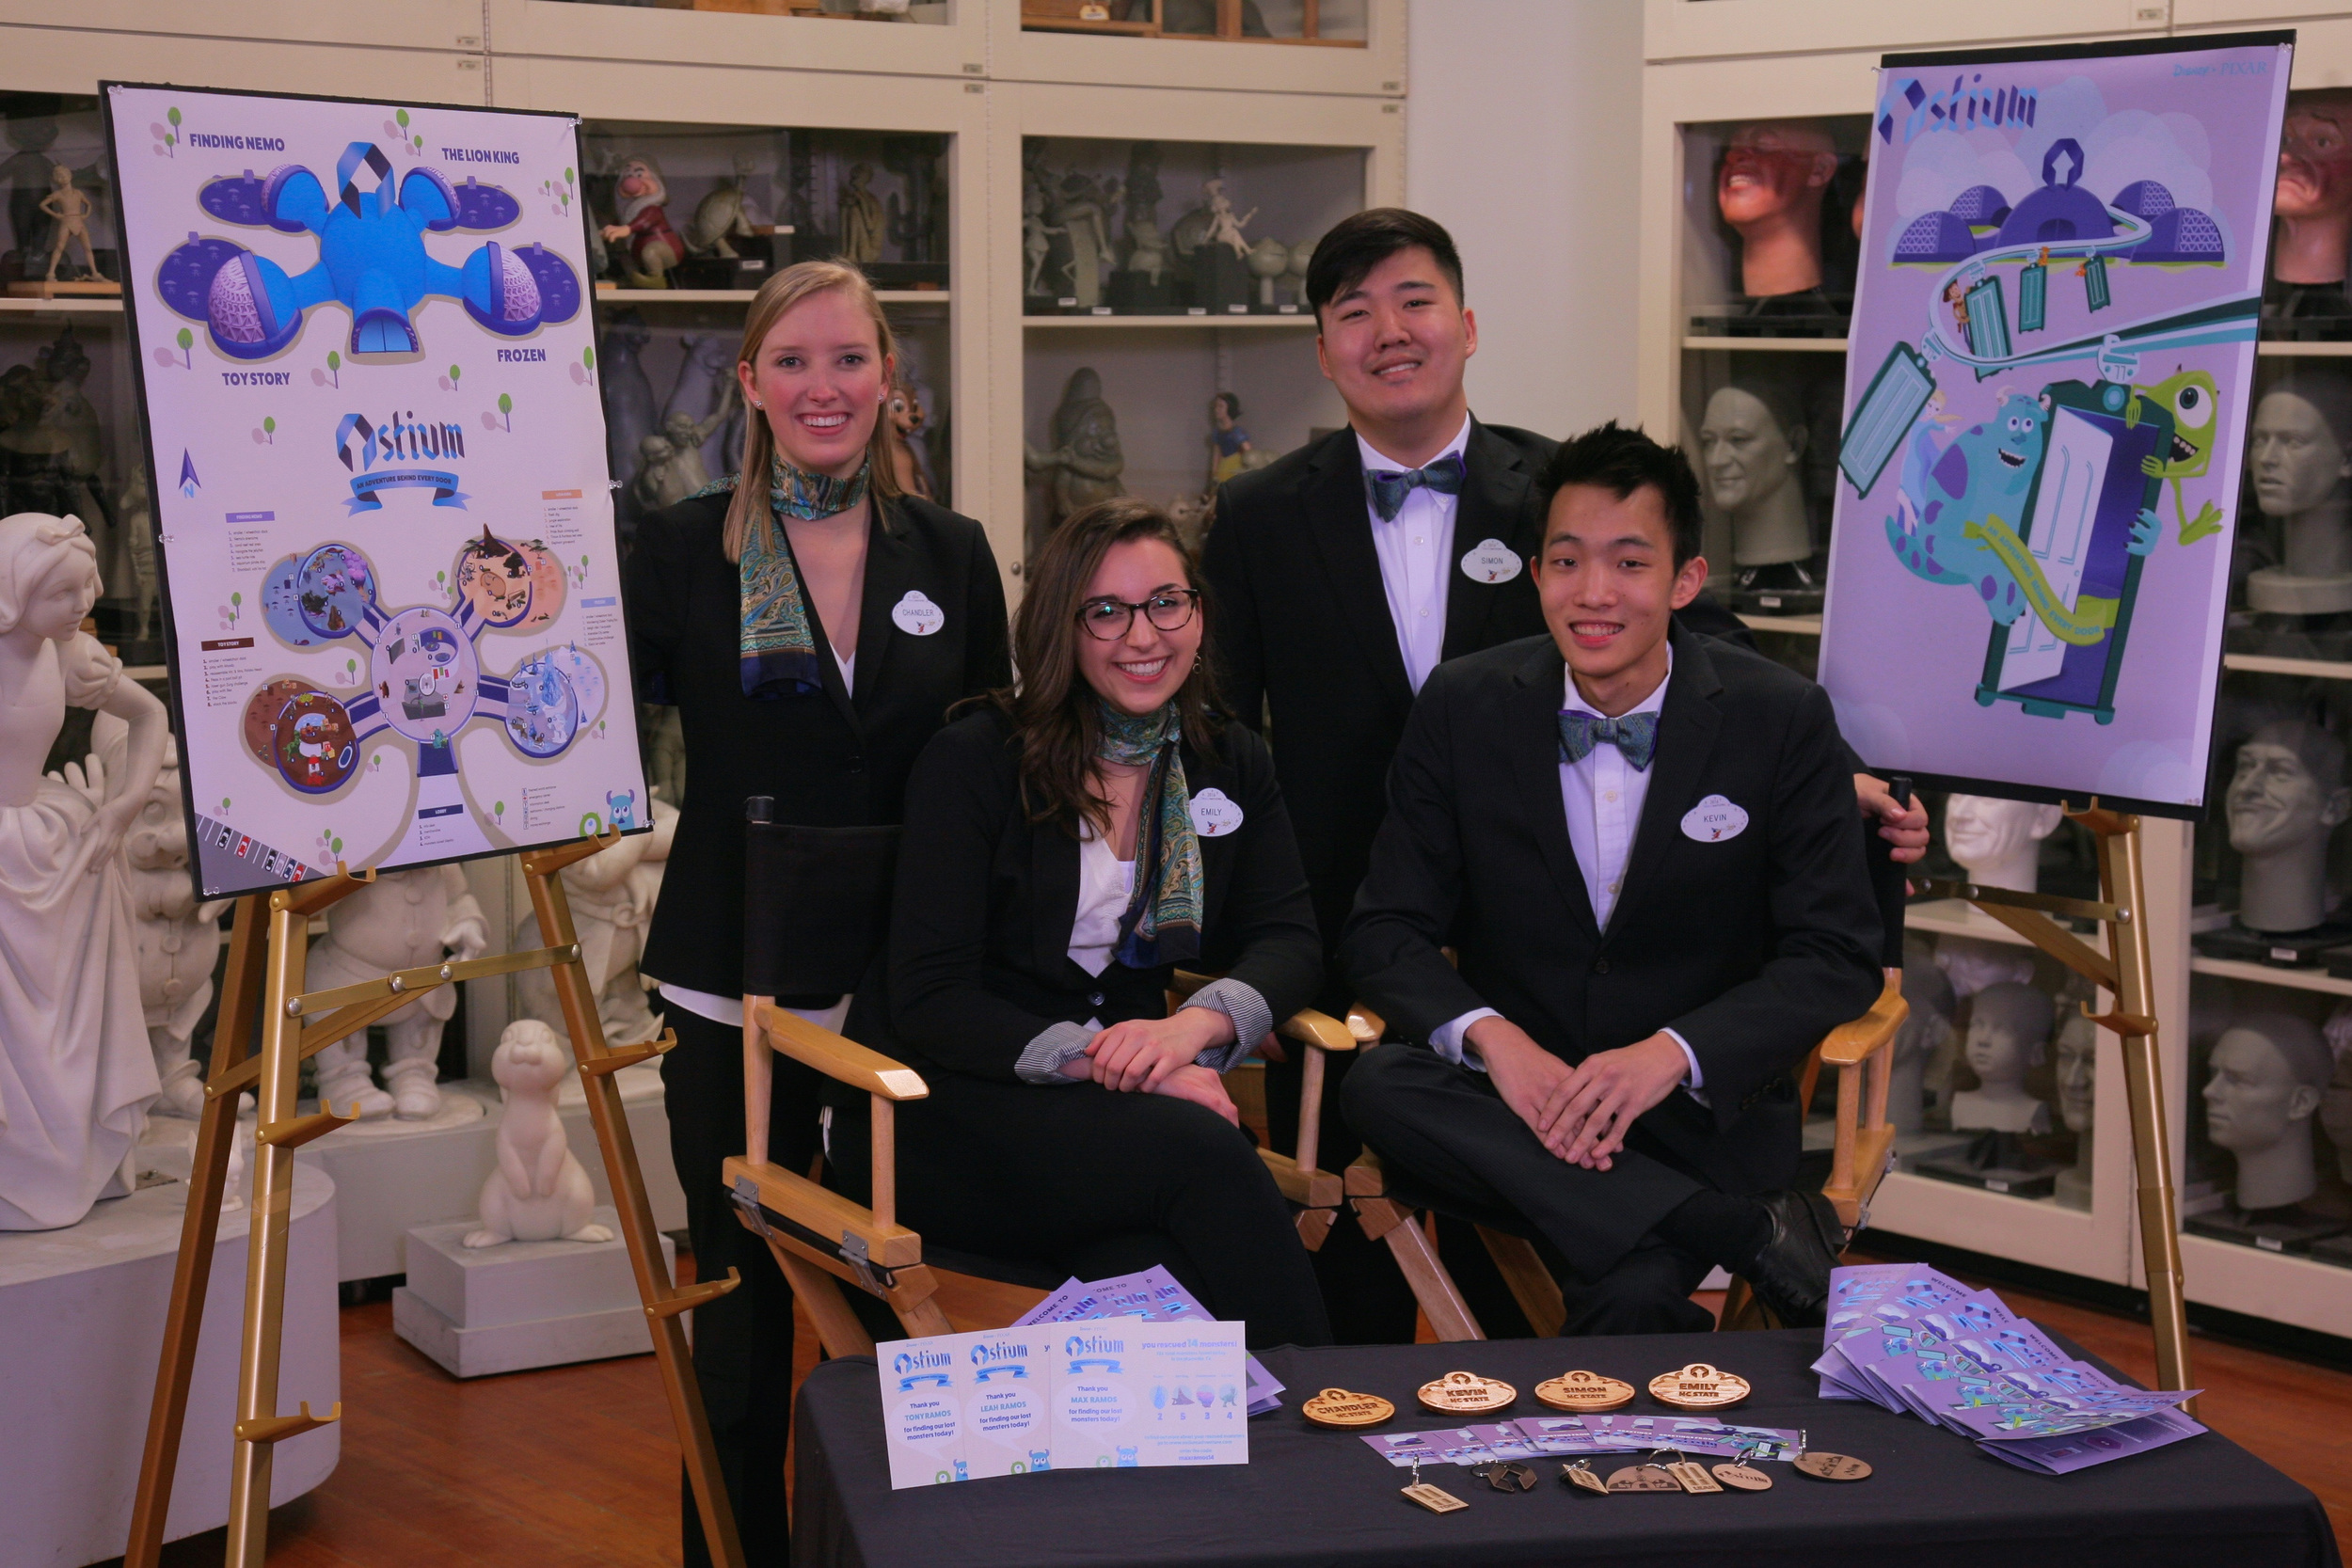 (Front Row Left to Right) Emily Wise and Kevin Lee (Back Row Left to Right) Chandler Williams and Simon Park - ©Disney photo by Gary Krueger